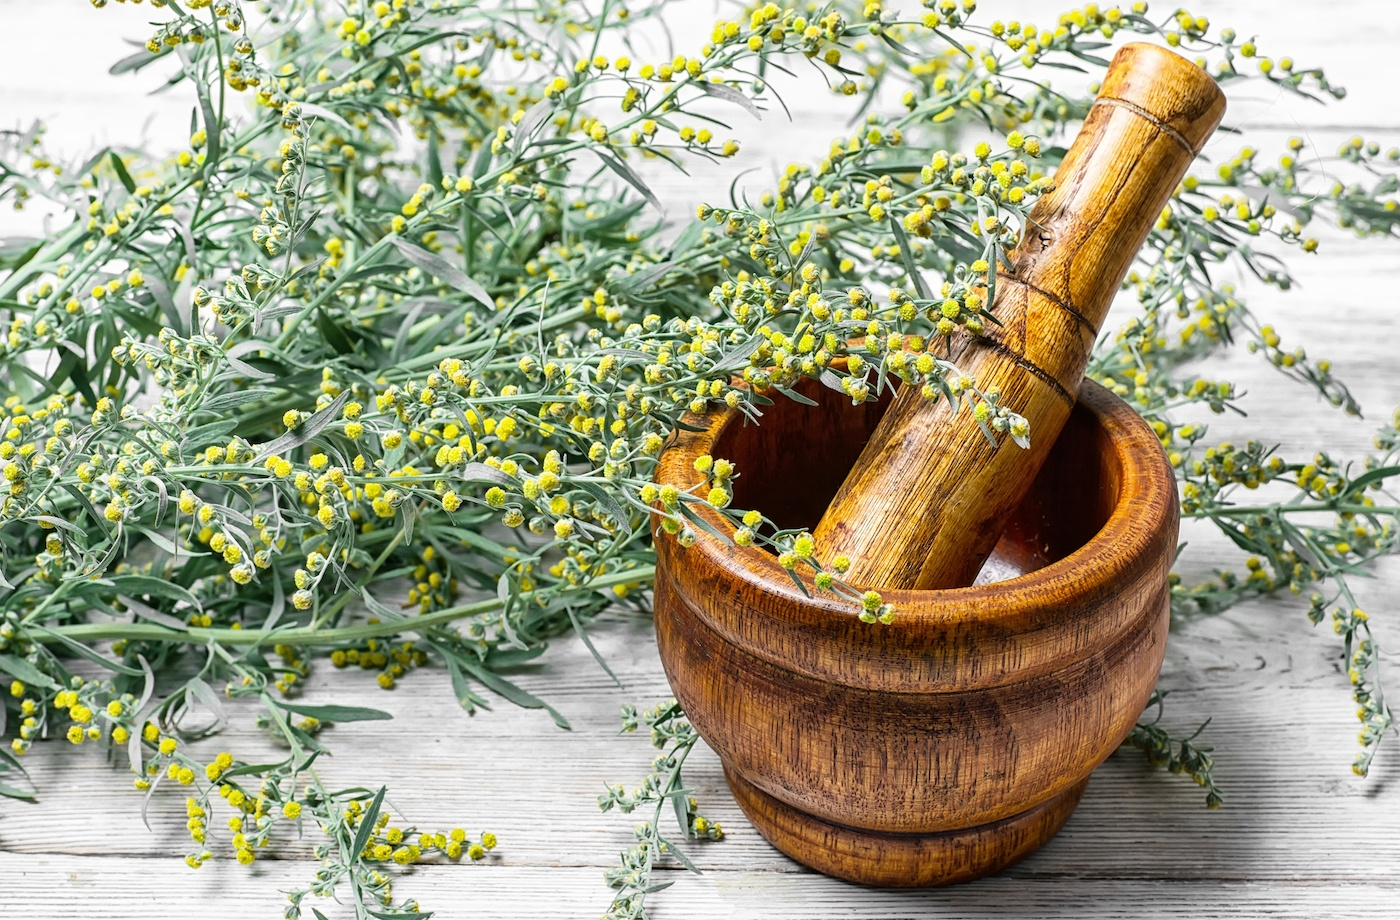 Thumbnail for Wormwood is an ancient herb with lots of health promise—here's what to know before trying it